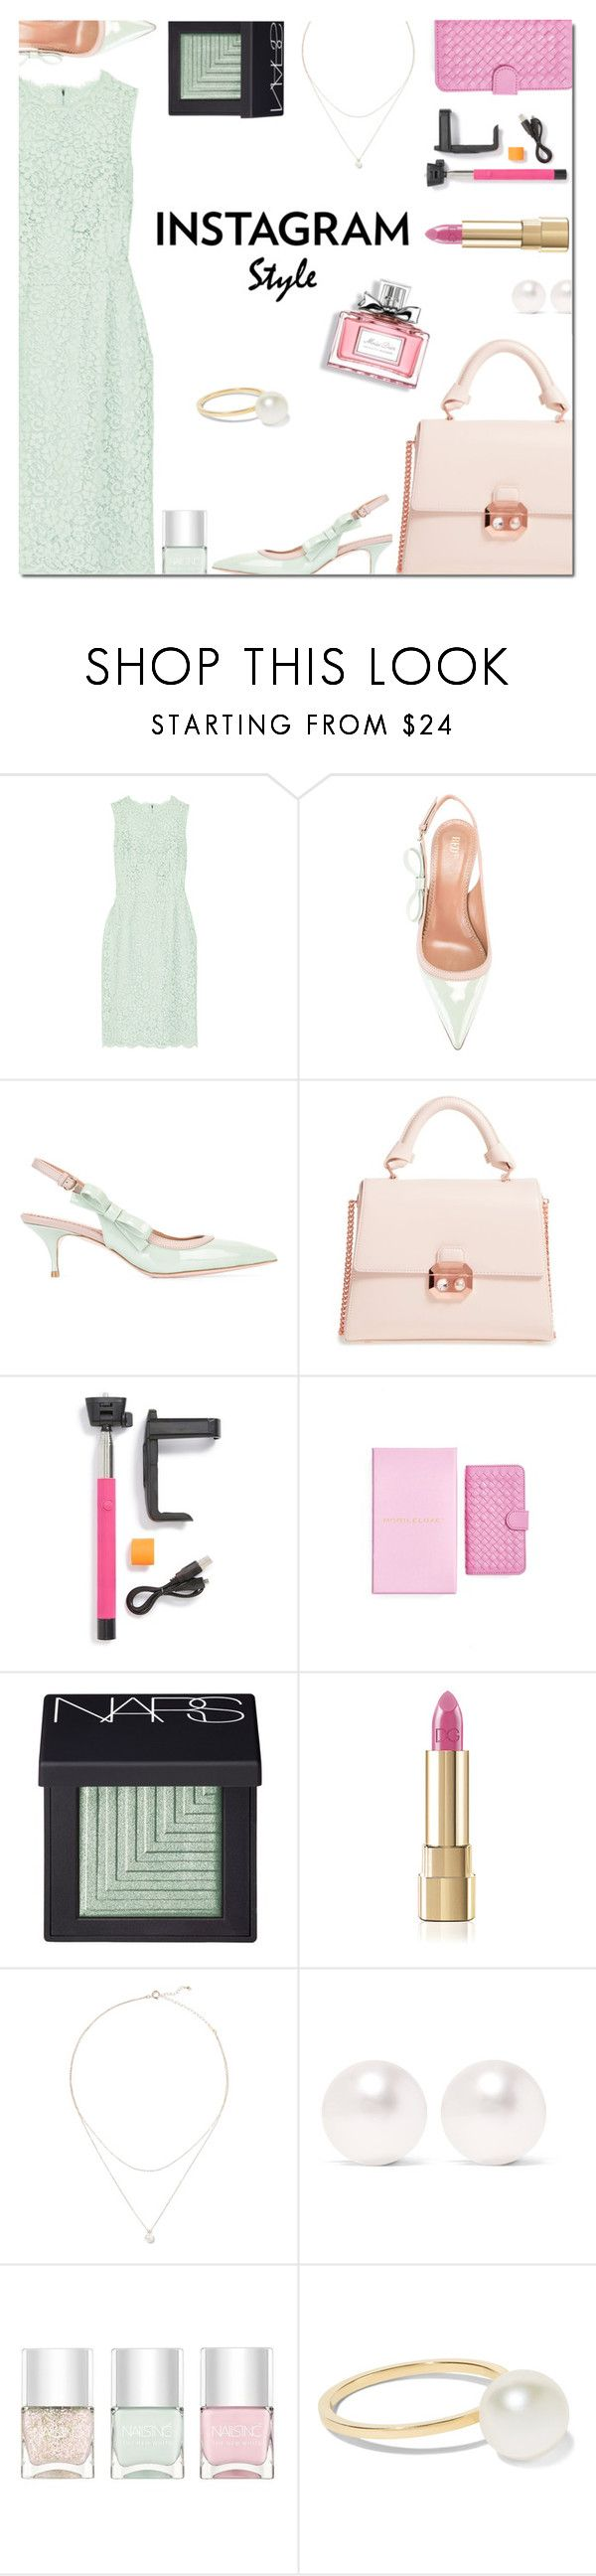 """""""60-Second Style: Insta-Ready"""" by danielle-487 ❤ liked on Polyvore featuring Dolce&Gabbana, RED Valentino, Ted Baker, MobileLuxe, NARS Cosmetics, mizuki, Larkspur & Hawk, Nails Inc., Christian Dior and Sophie Bille Brahe"""